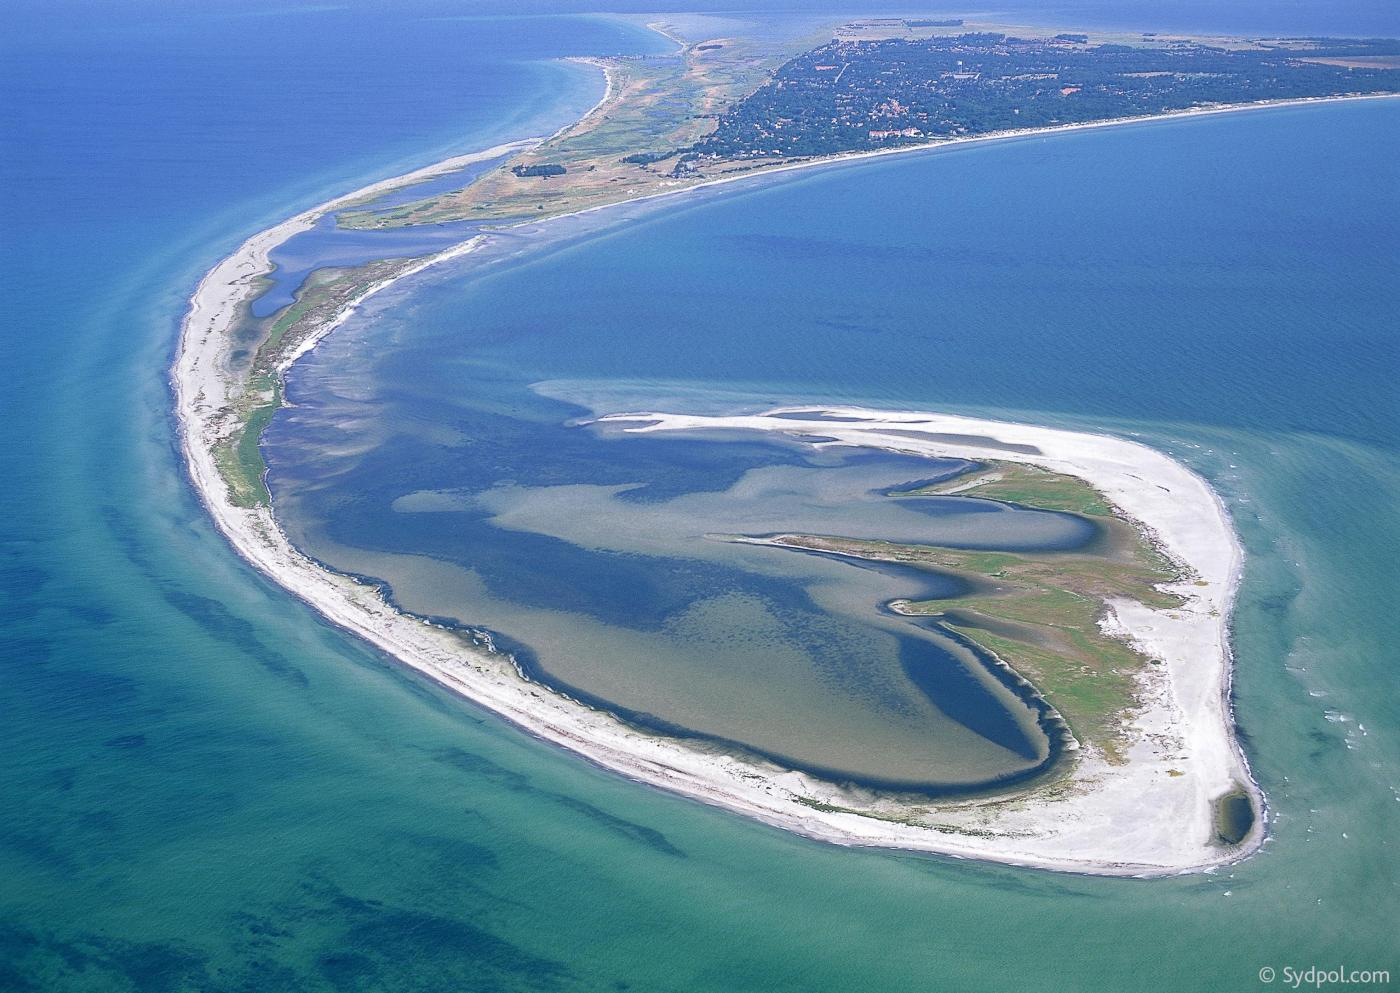 Beaches and landscape by the ocean